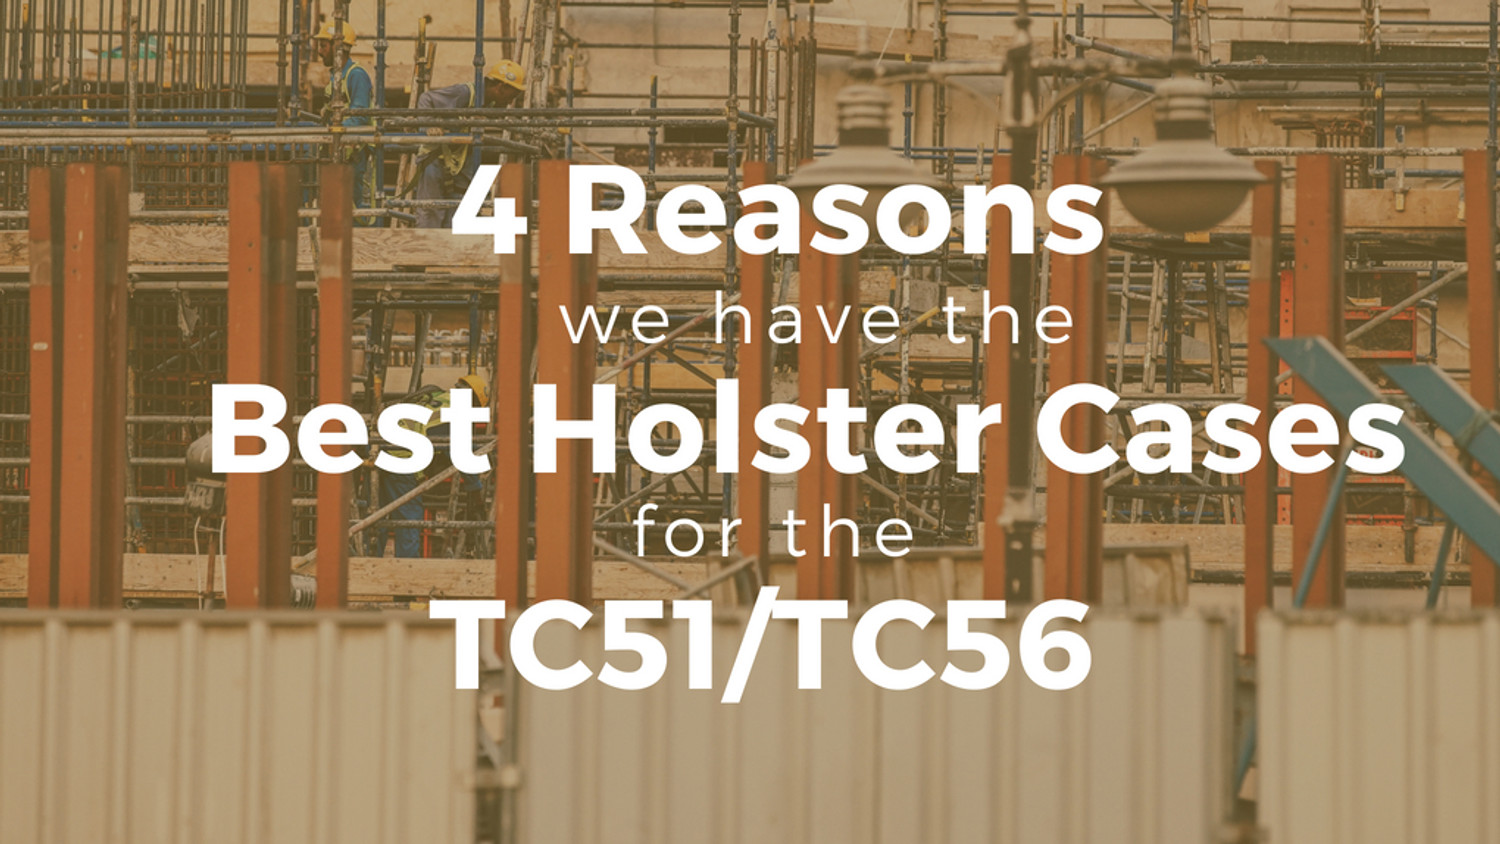 ​4 Reasons We Have the Best Holster Cases for the TC51/TC56